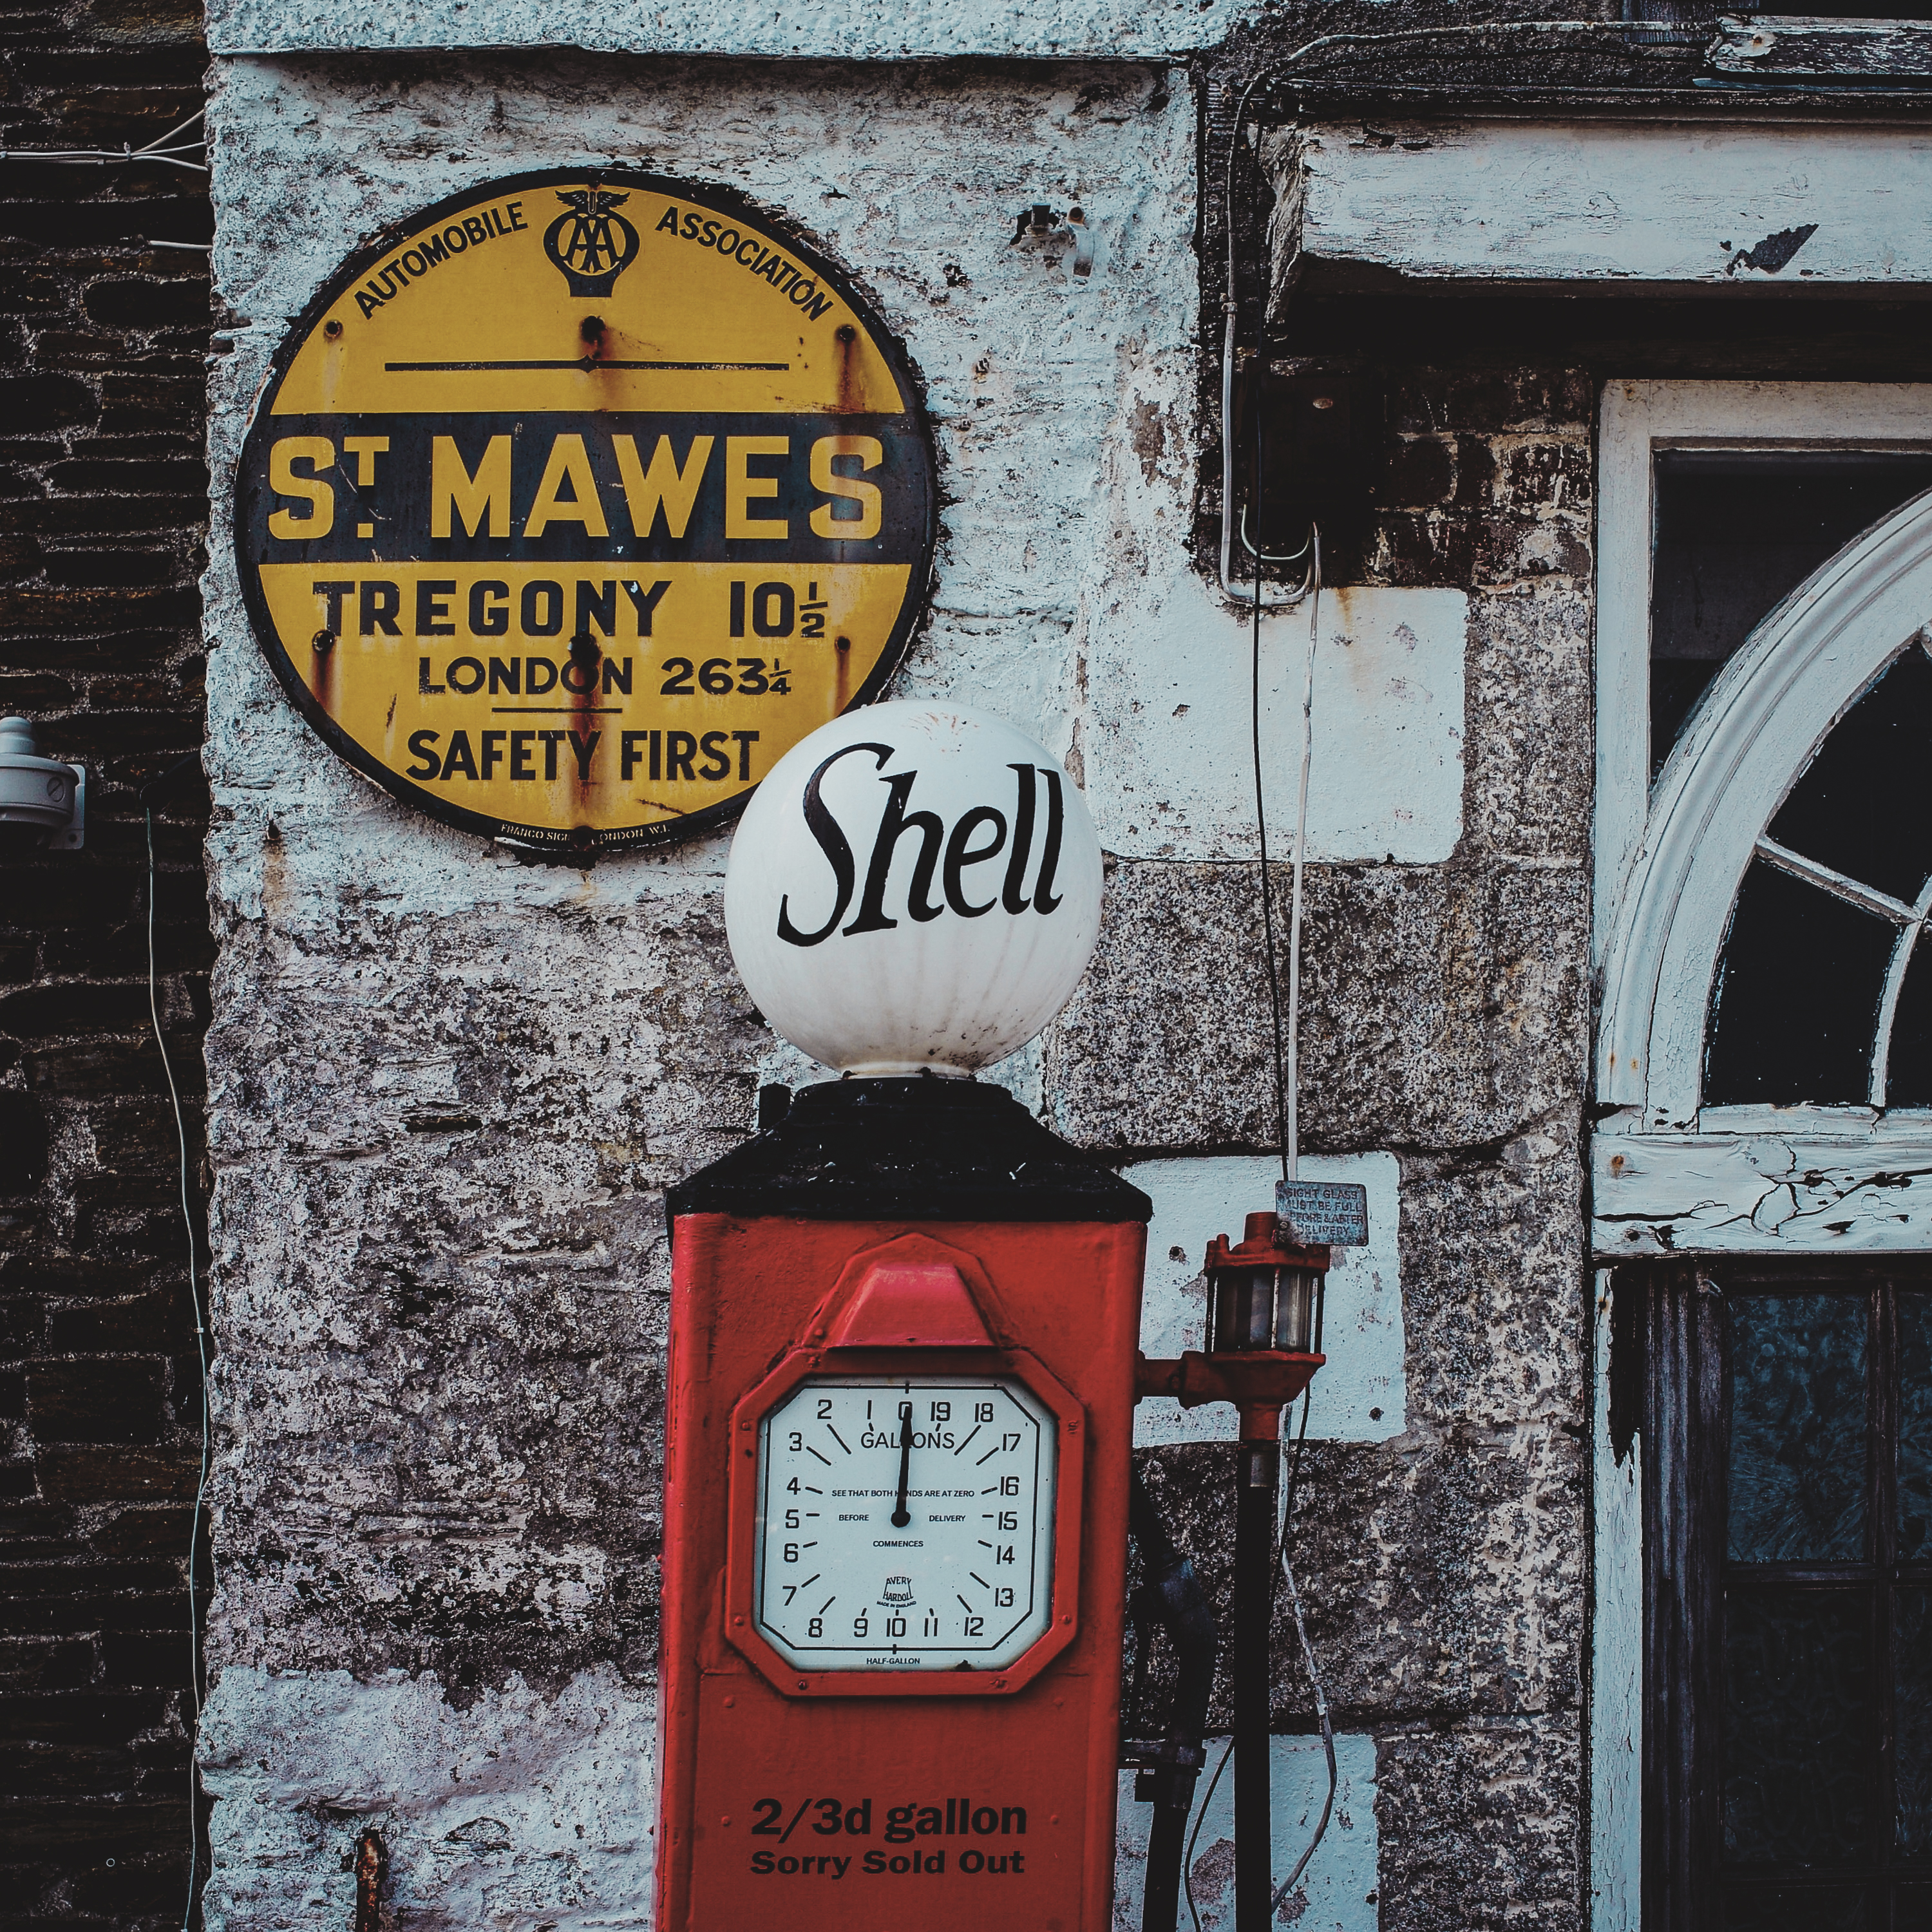 A red petrol pump by an old wall with a yellow sign